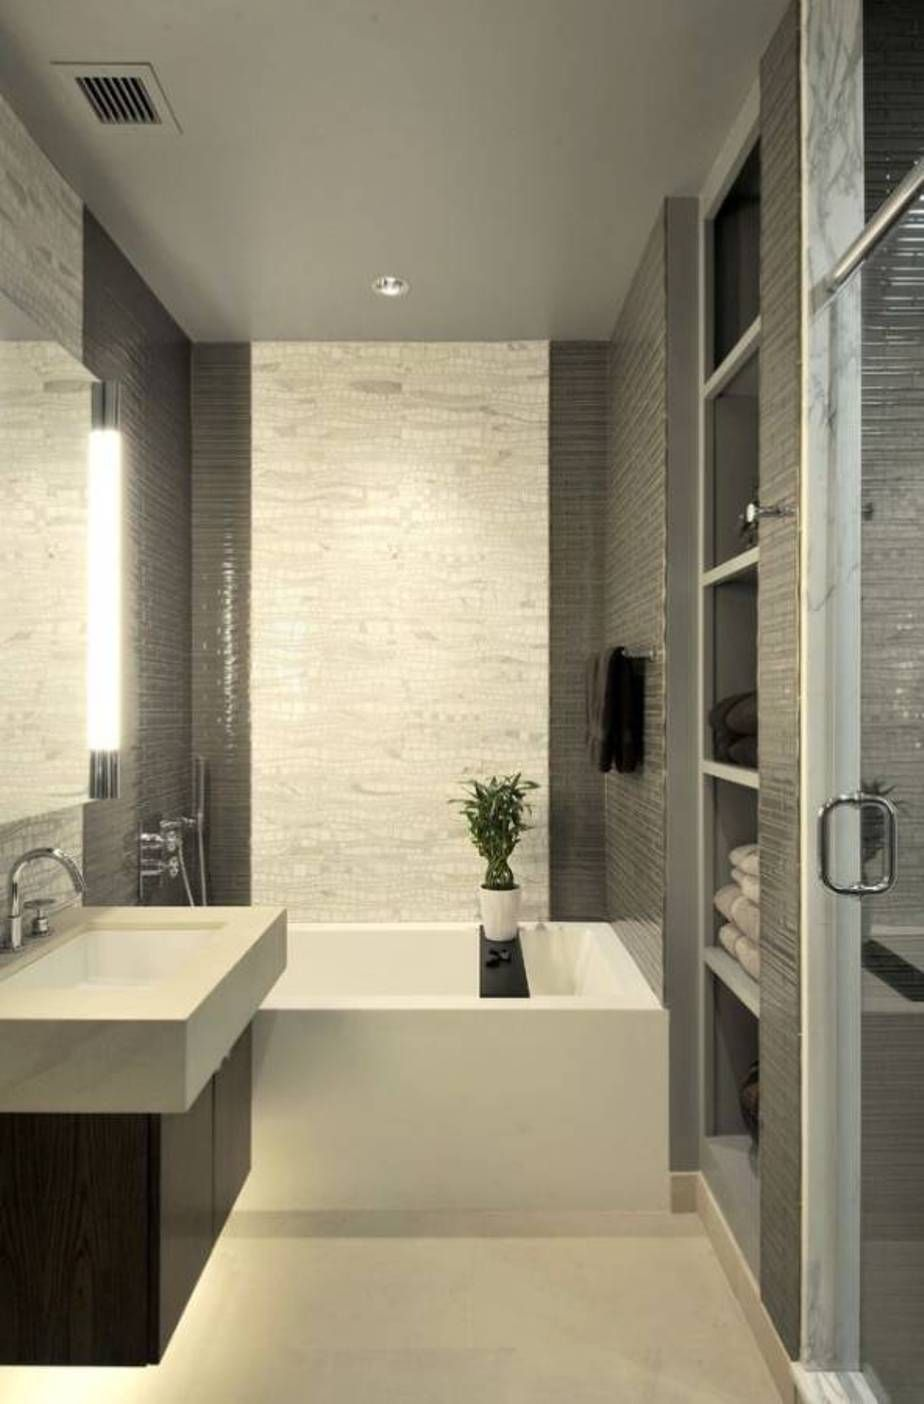 Bathroom Modern Small Bathroom Design Ideas Modern Small Bathroom Design With Drop In Tub